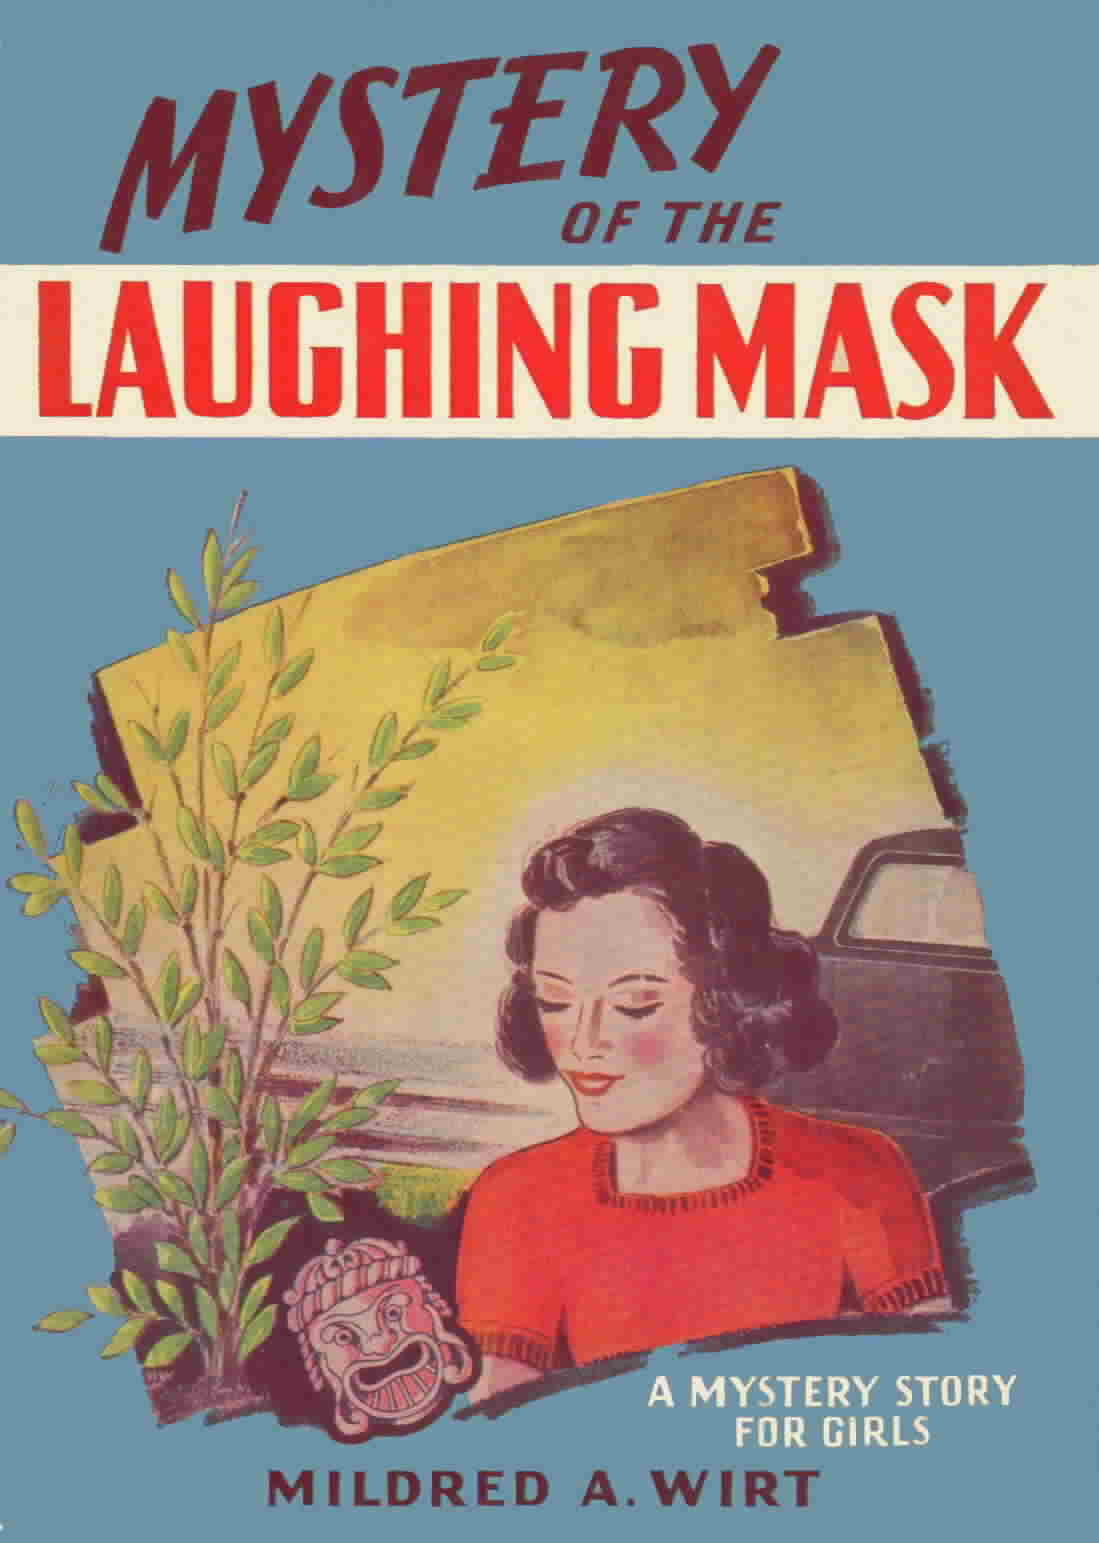 'Mystery of the Laughing Mask' by Mildred A. Wirt